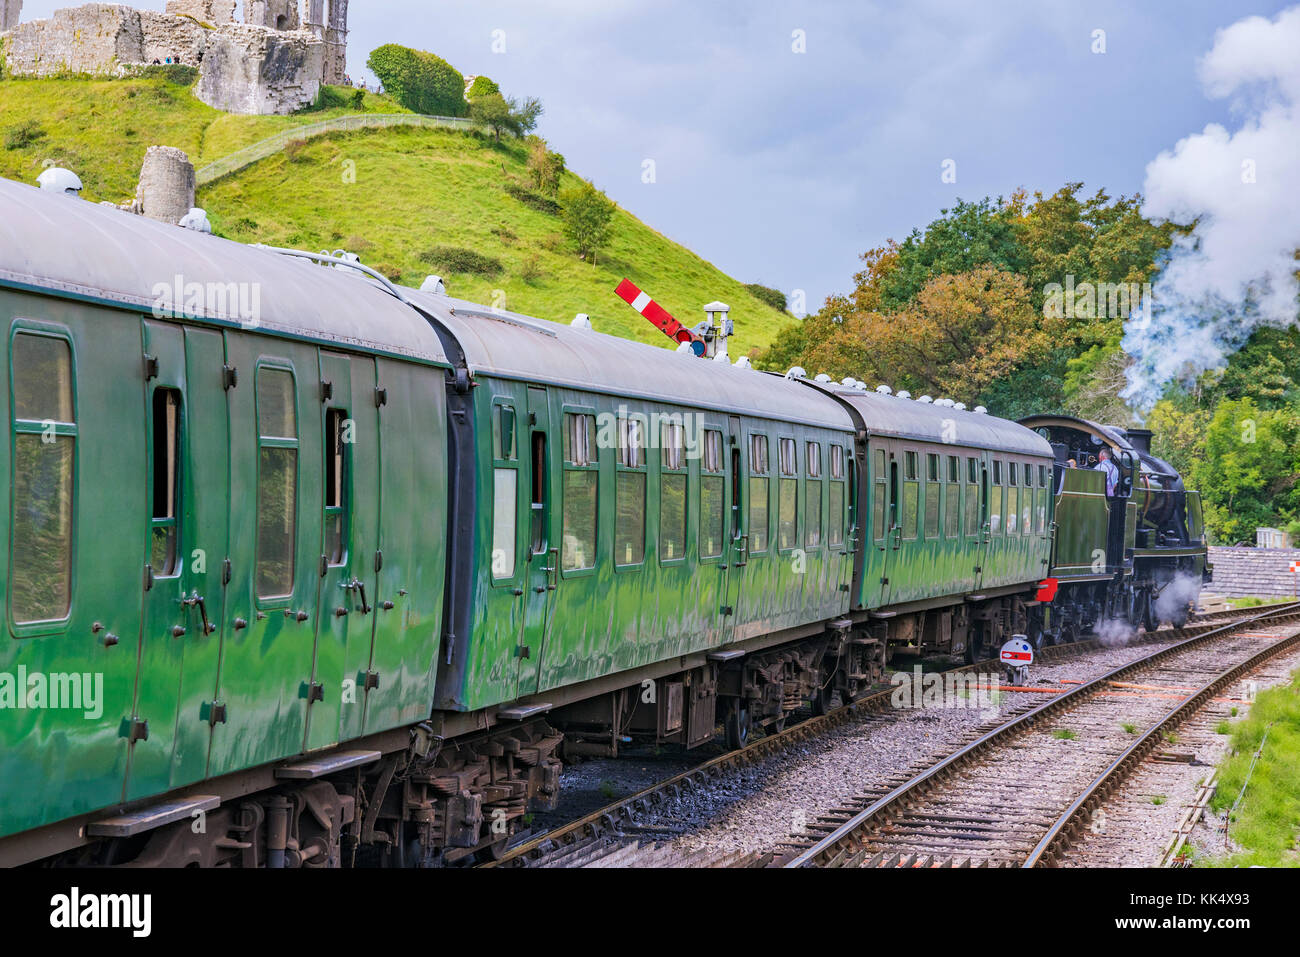 CORFE, UNITED KINGDOM - SEPTEMBER 06: This is a traditional British steam train passing through the medieval town - Stock Image